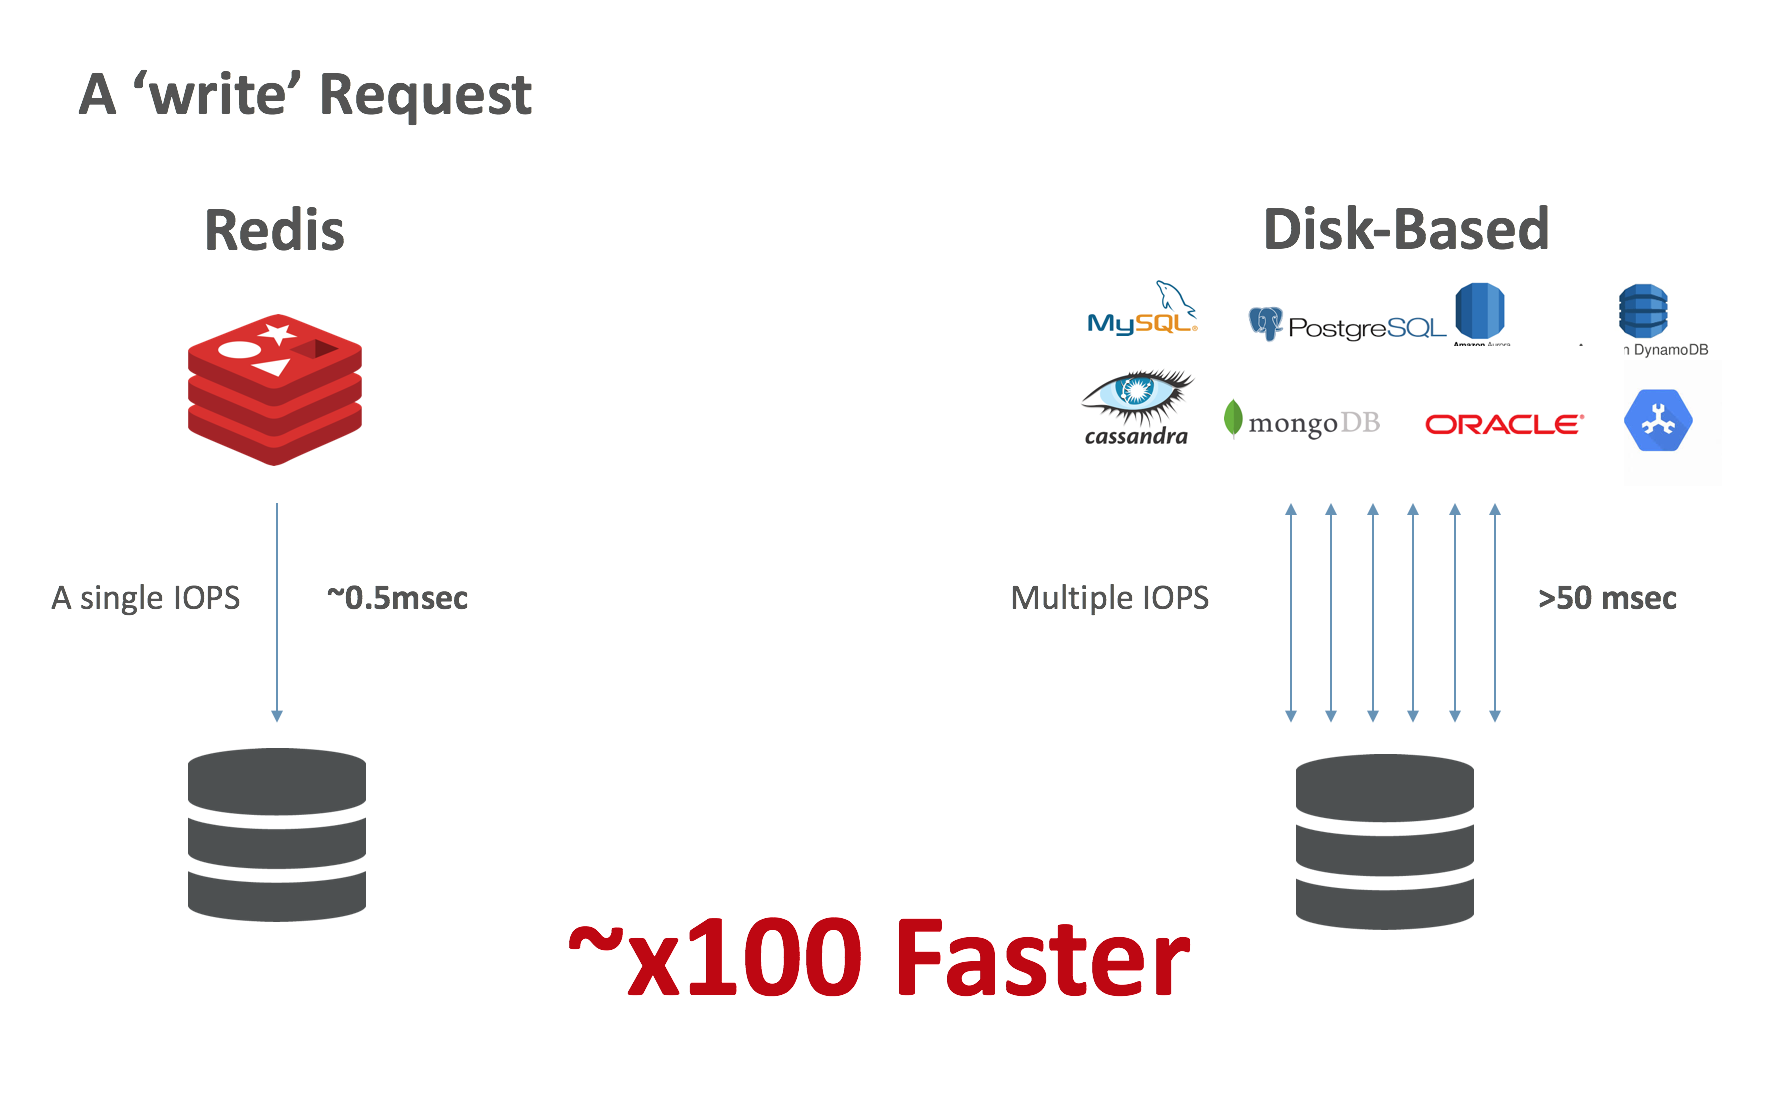 Network-attached Persistent Storage for Data Durability: Write x100 faster